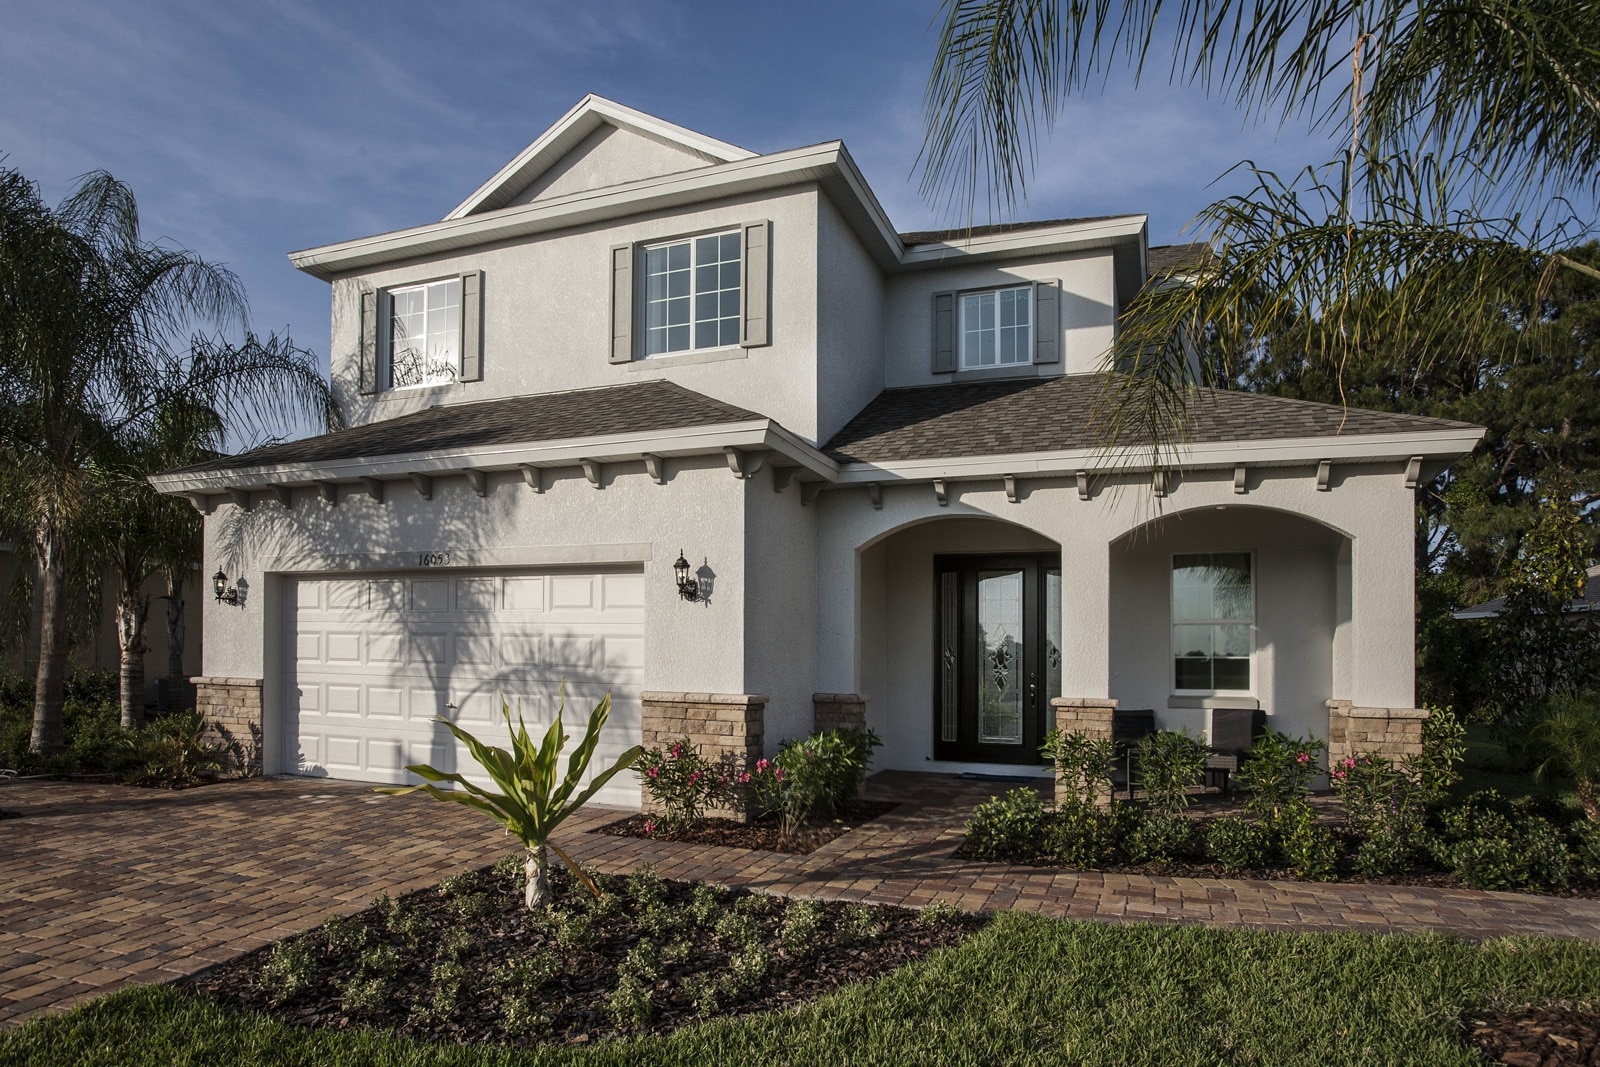 Sawgrass Bay Model C